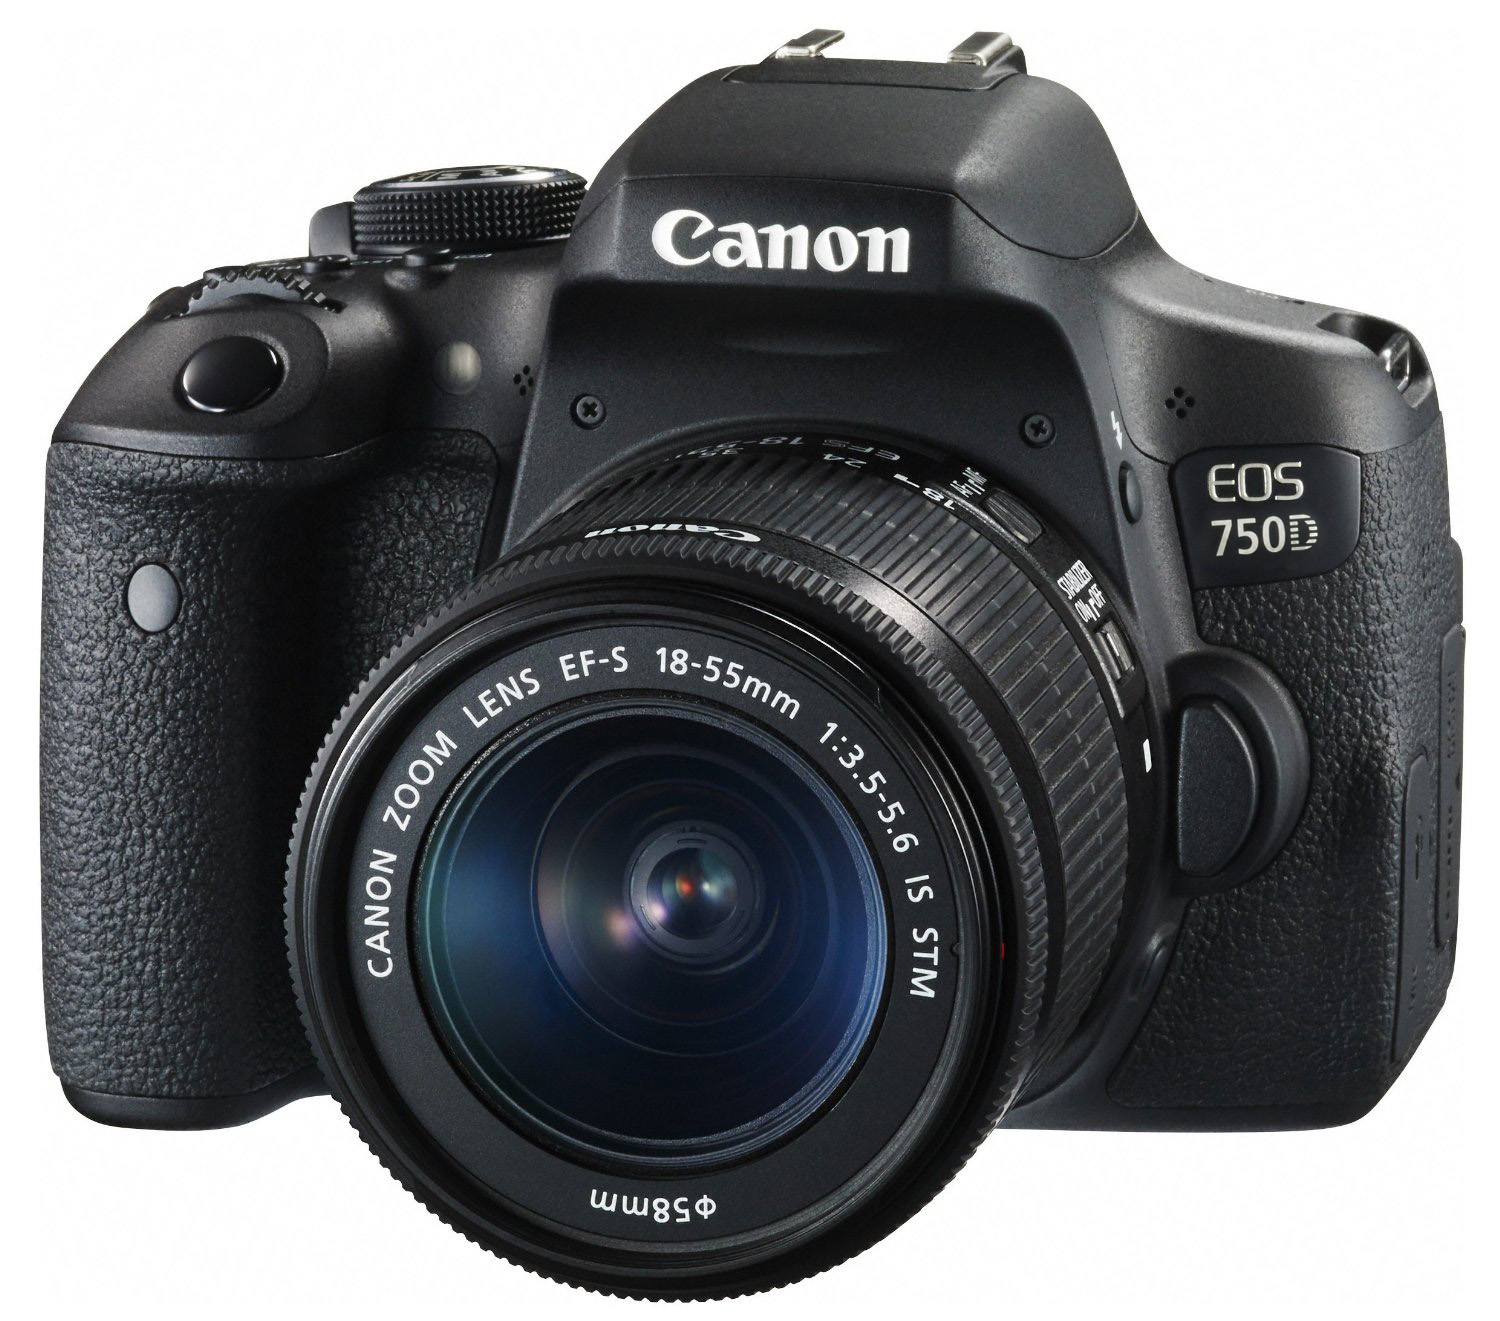 Canon EOS 750D A great mid-range DSLR  sc 1 st  Expert Reviews & Best camera 2017: The best compact CSC and digital SLR cameras ... azcodes.com